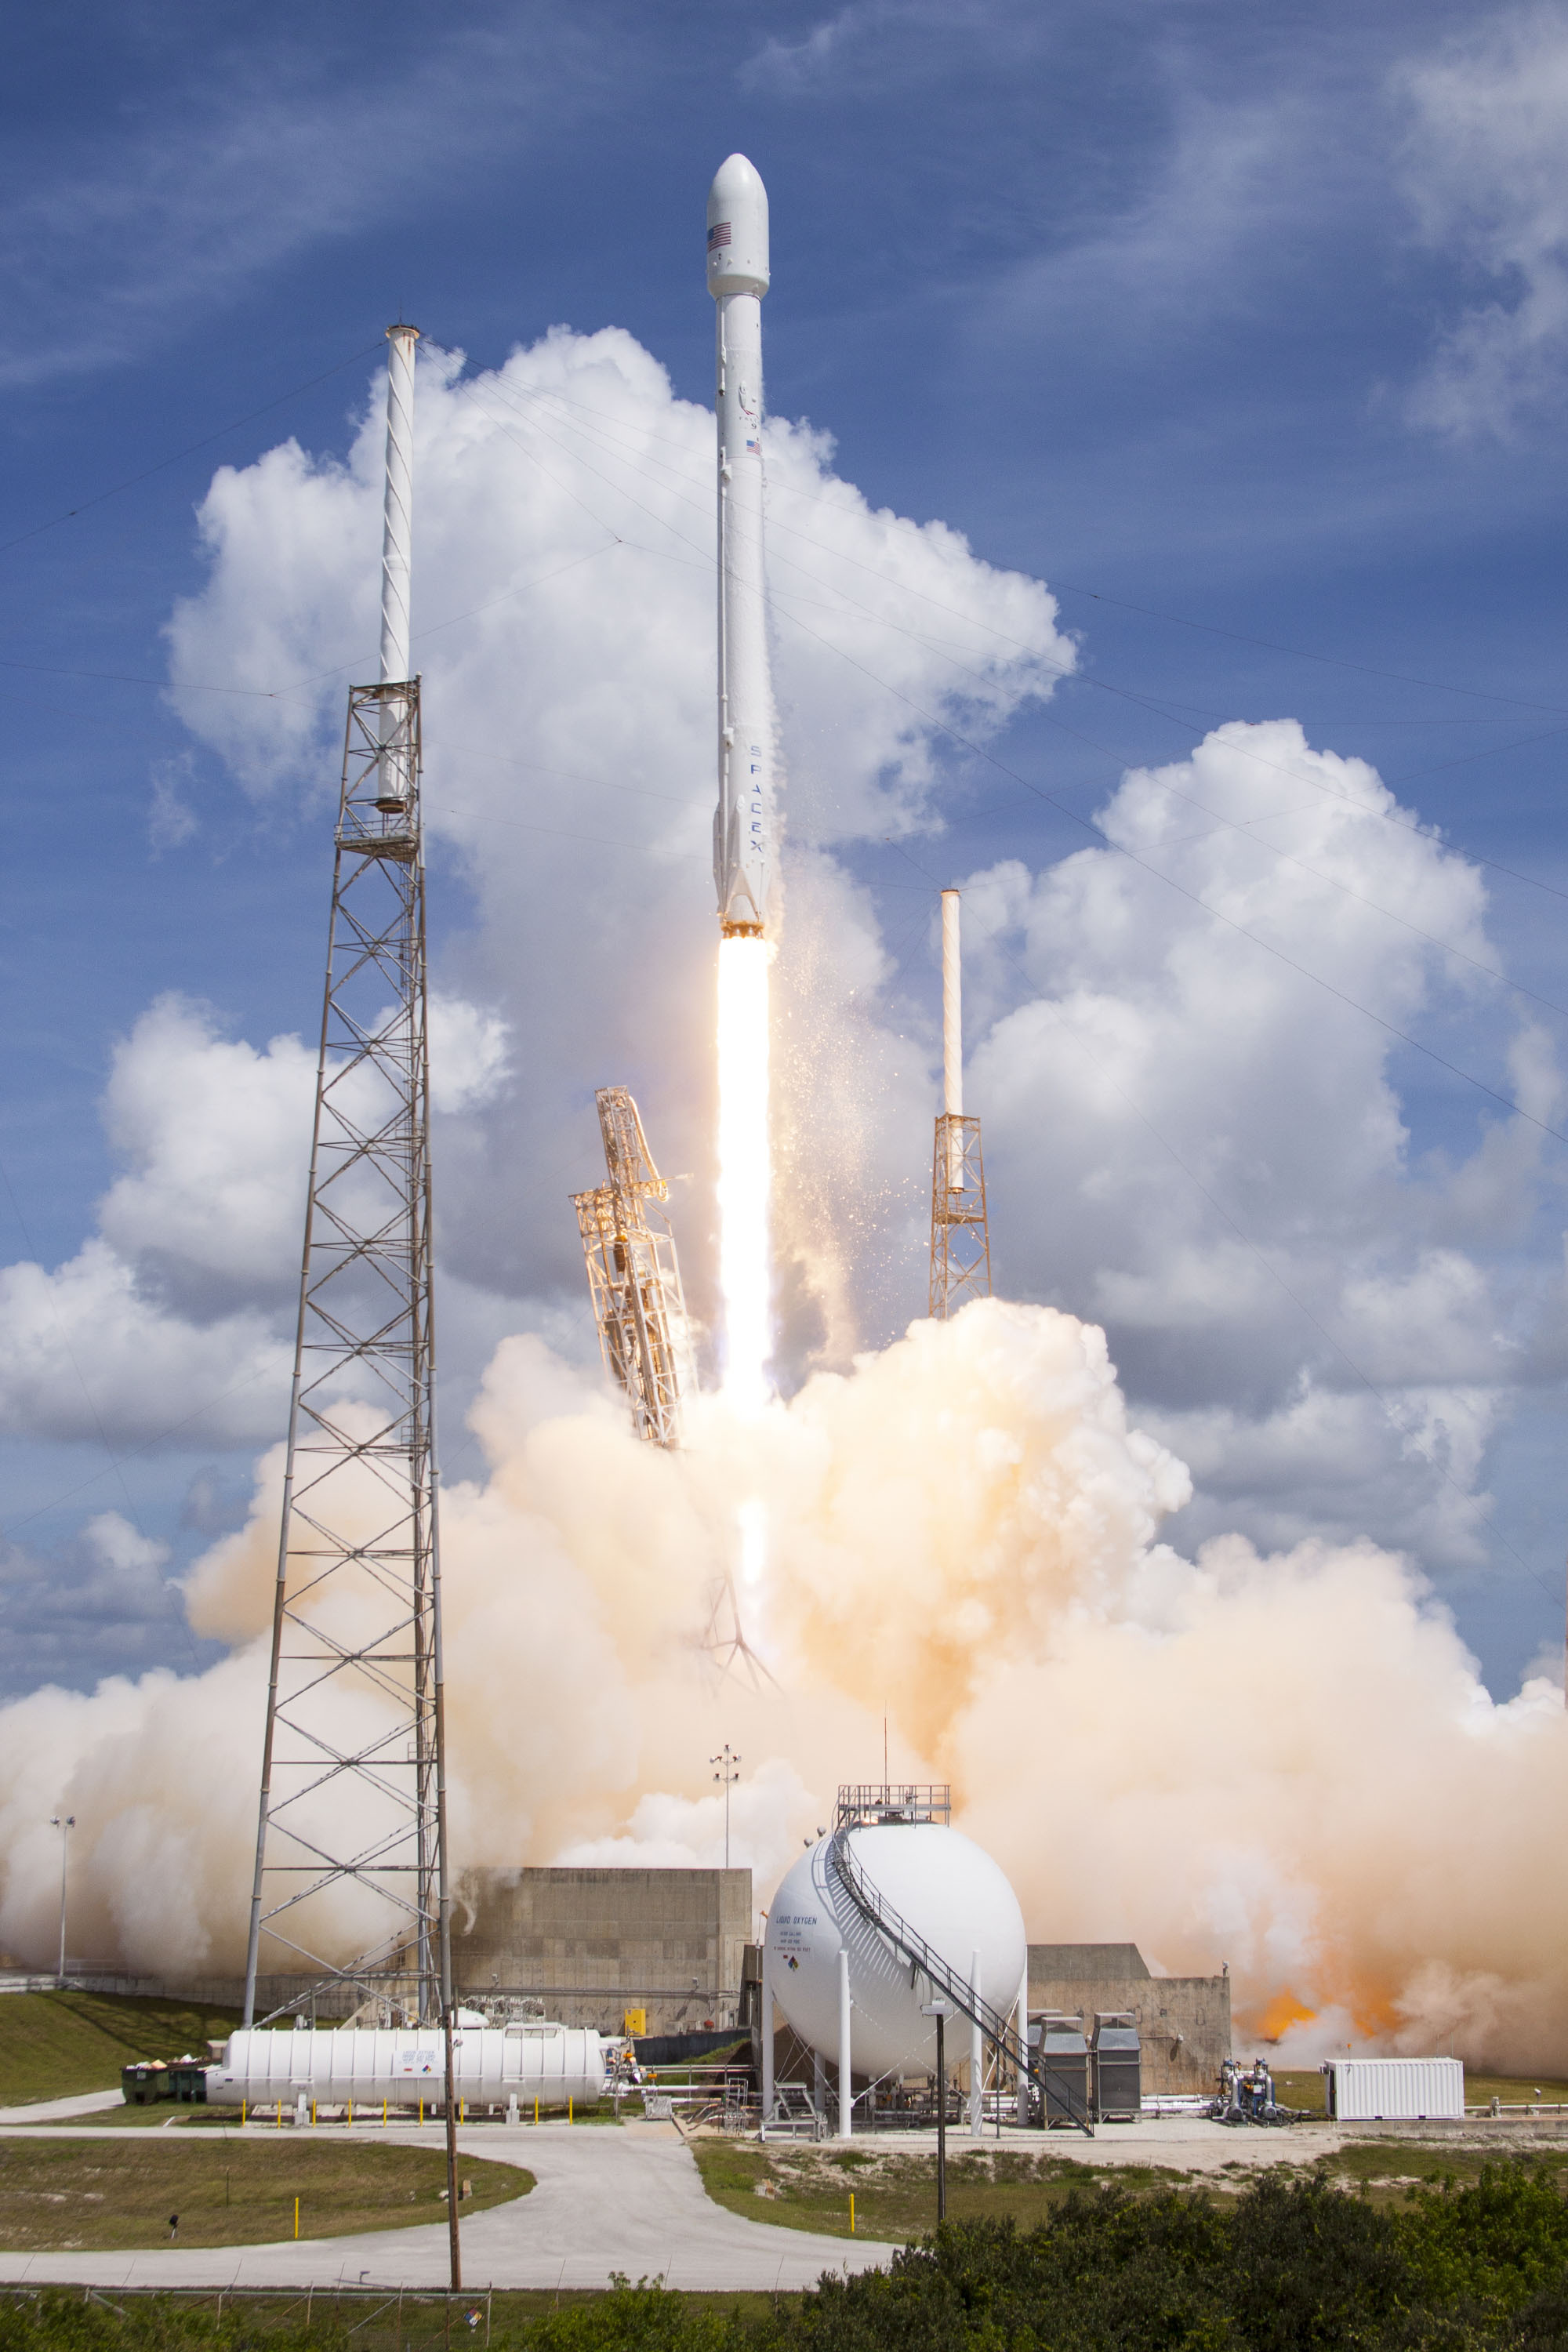 Terra Bella has signed an agreement with Spaceflight for a SpaceX Falcon 9 launch of Terra Bella SkySats. (Photo: Business Wire)